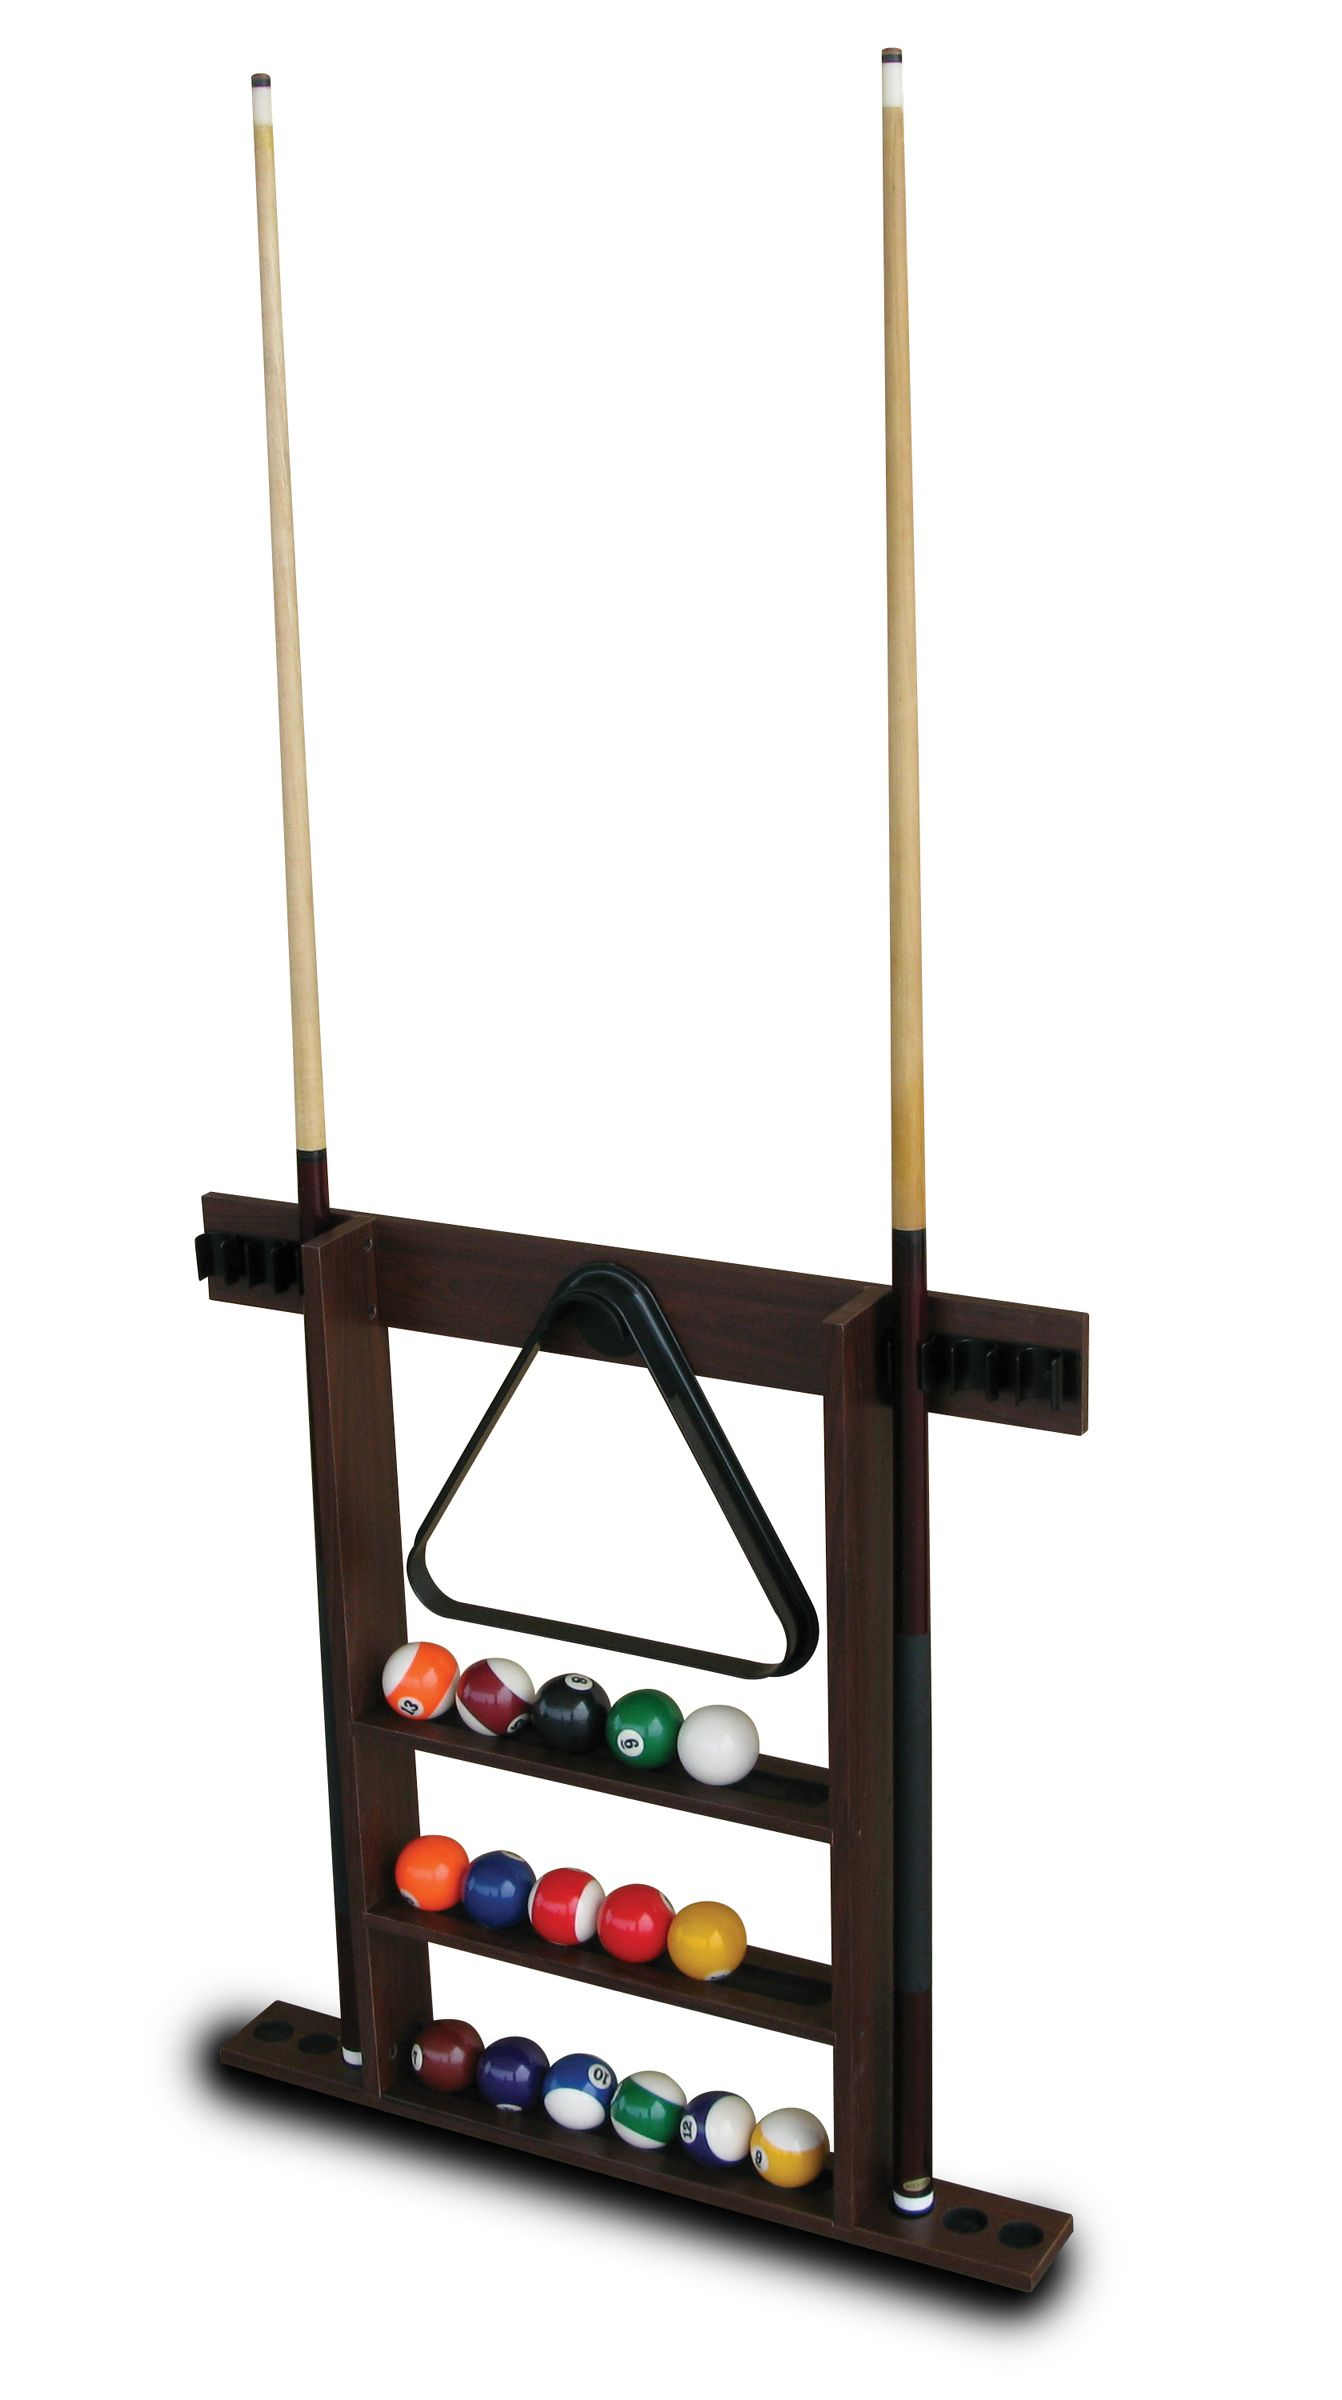 Sportcraft 90in Kingsford Billiard Table with Cue Rack